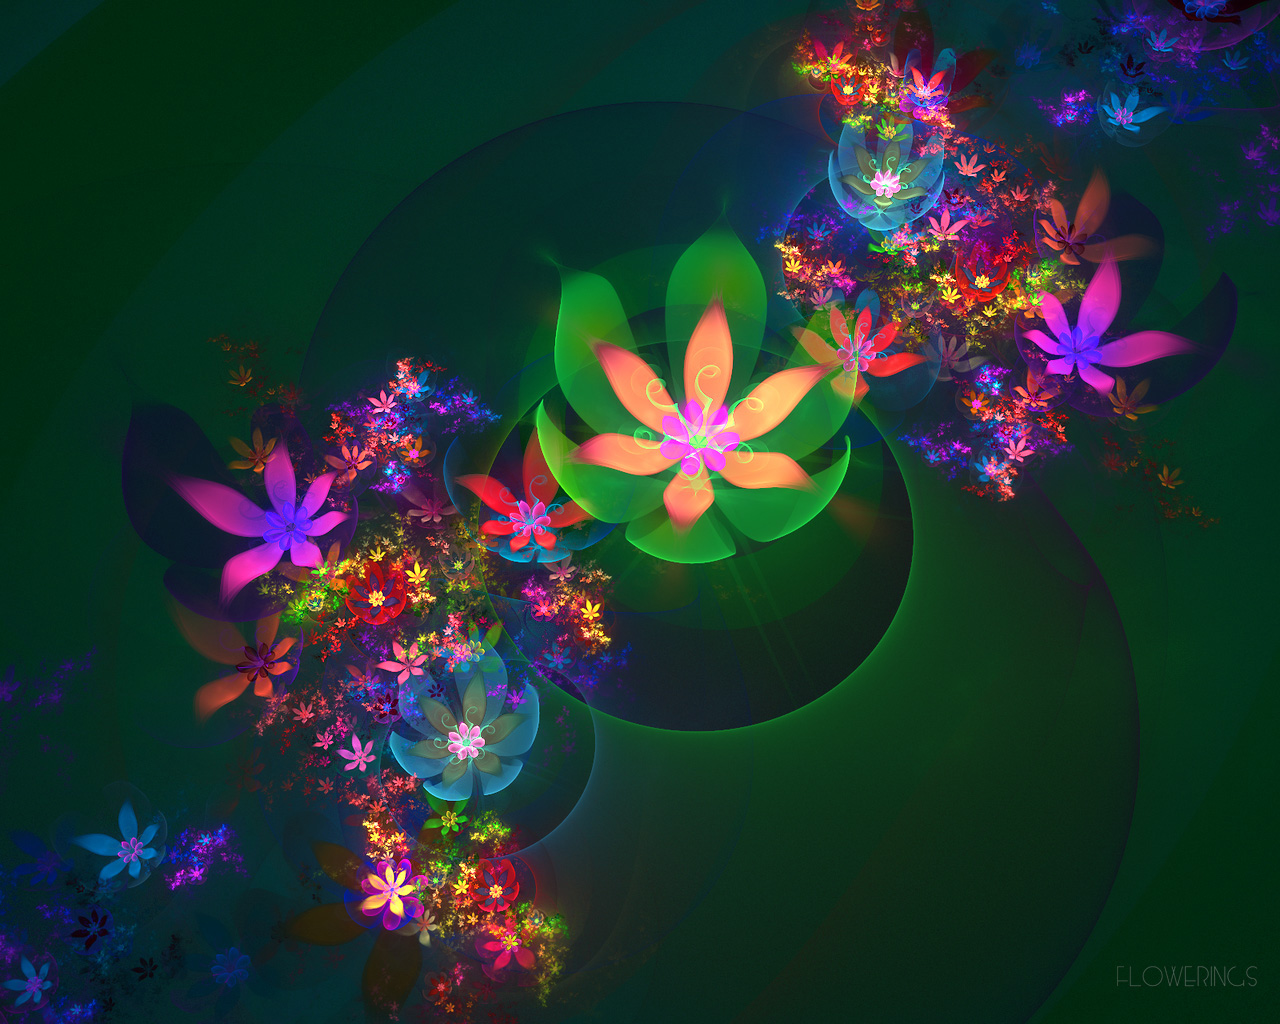 D fantasy abstract flowers 2432